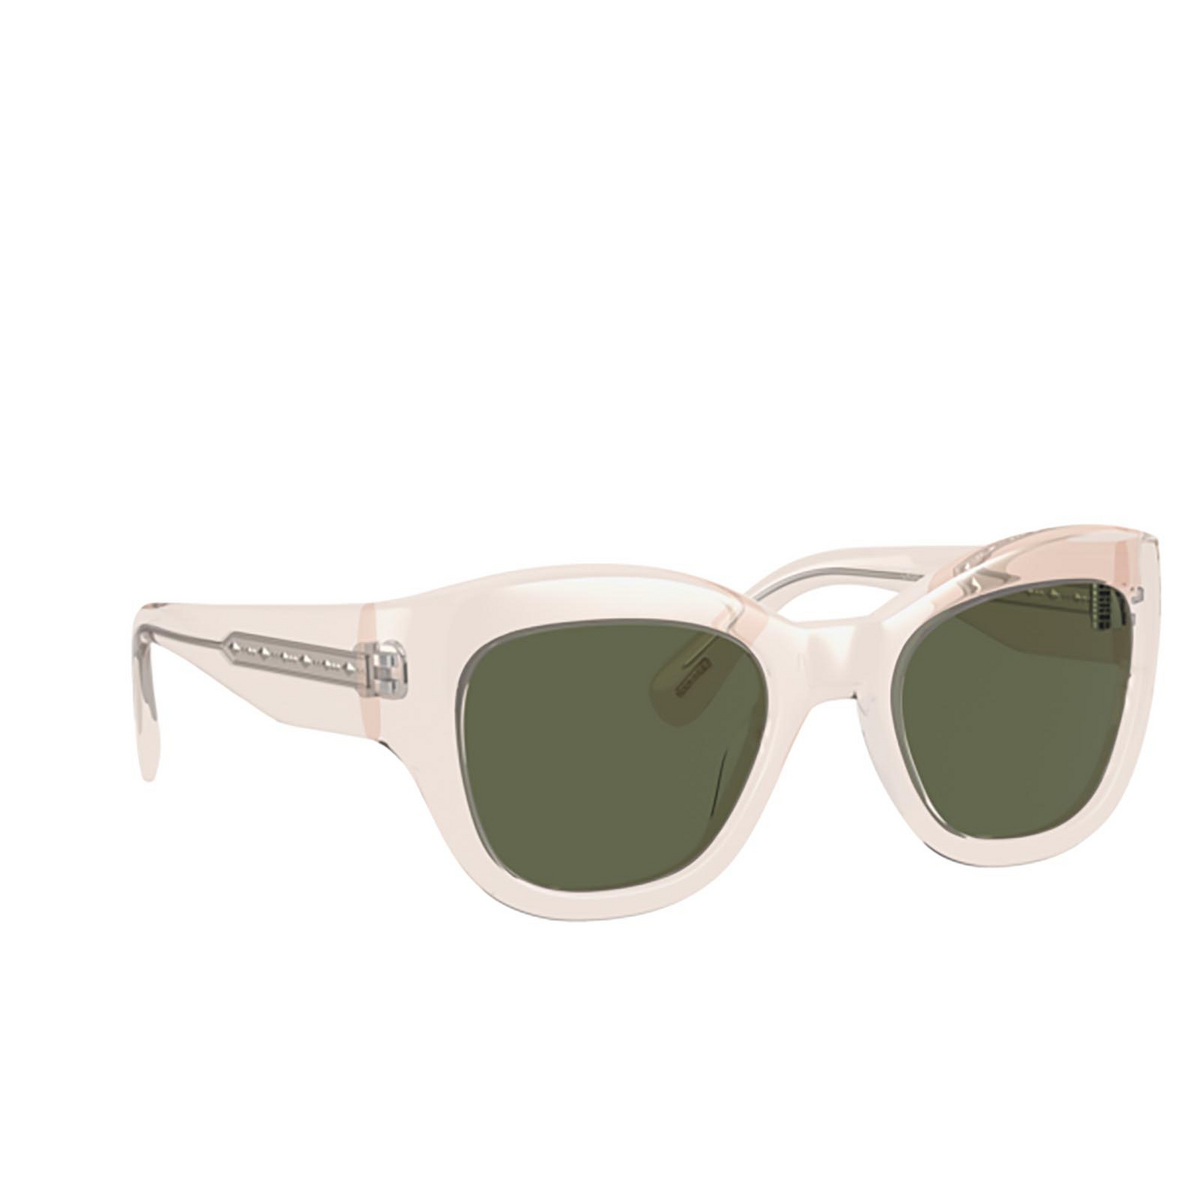 Oliver Peoples® Butterfly Sunglasses: Lalit OV5430SU color Buff 109471 - three-quarters view.